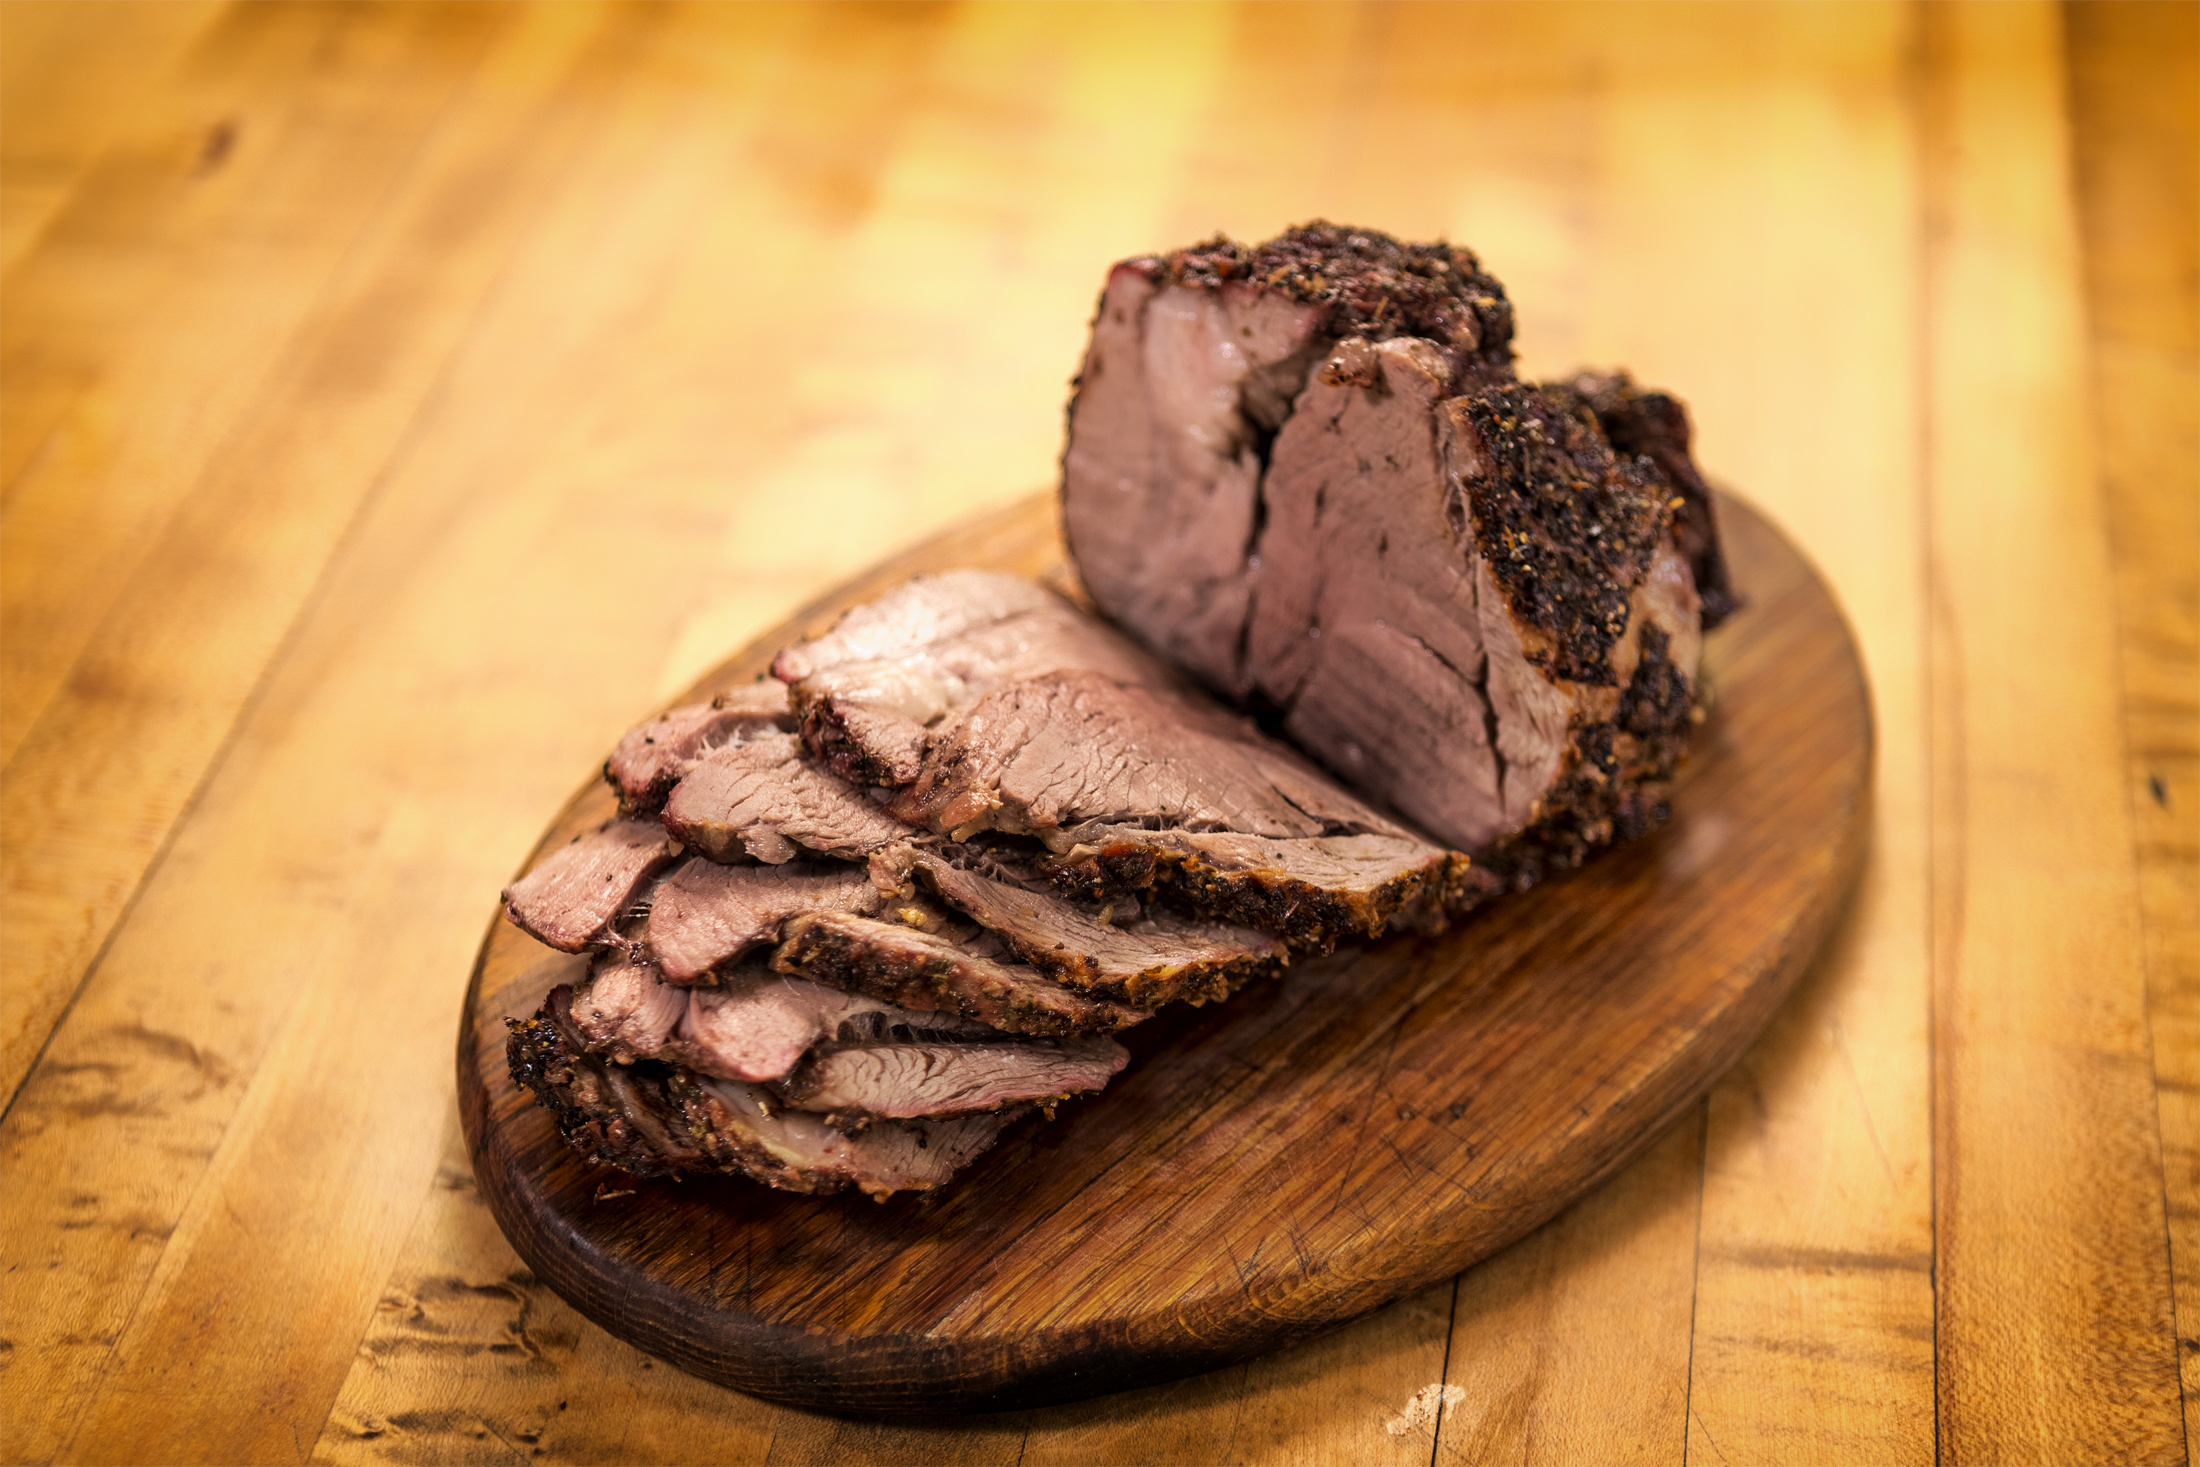 Herb-Rubbed Roasted Boneless Leg of Lamb